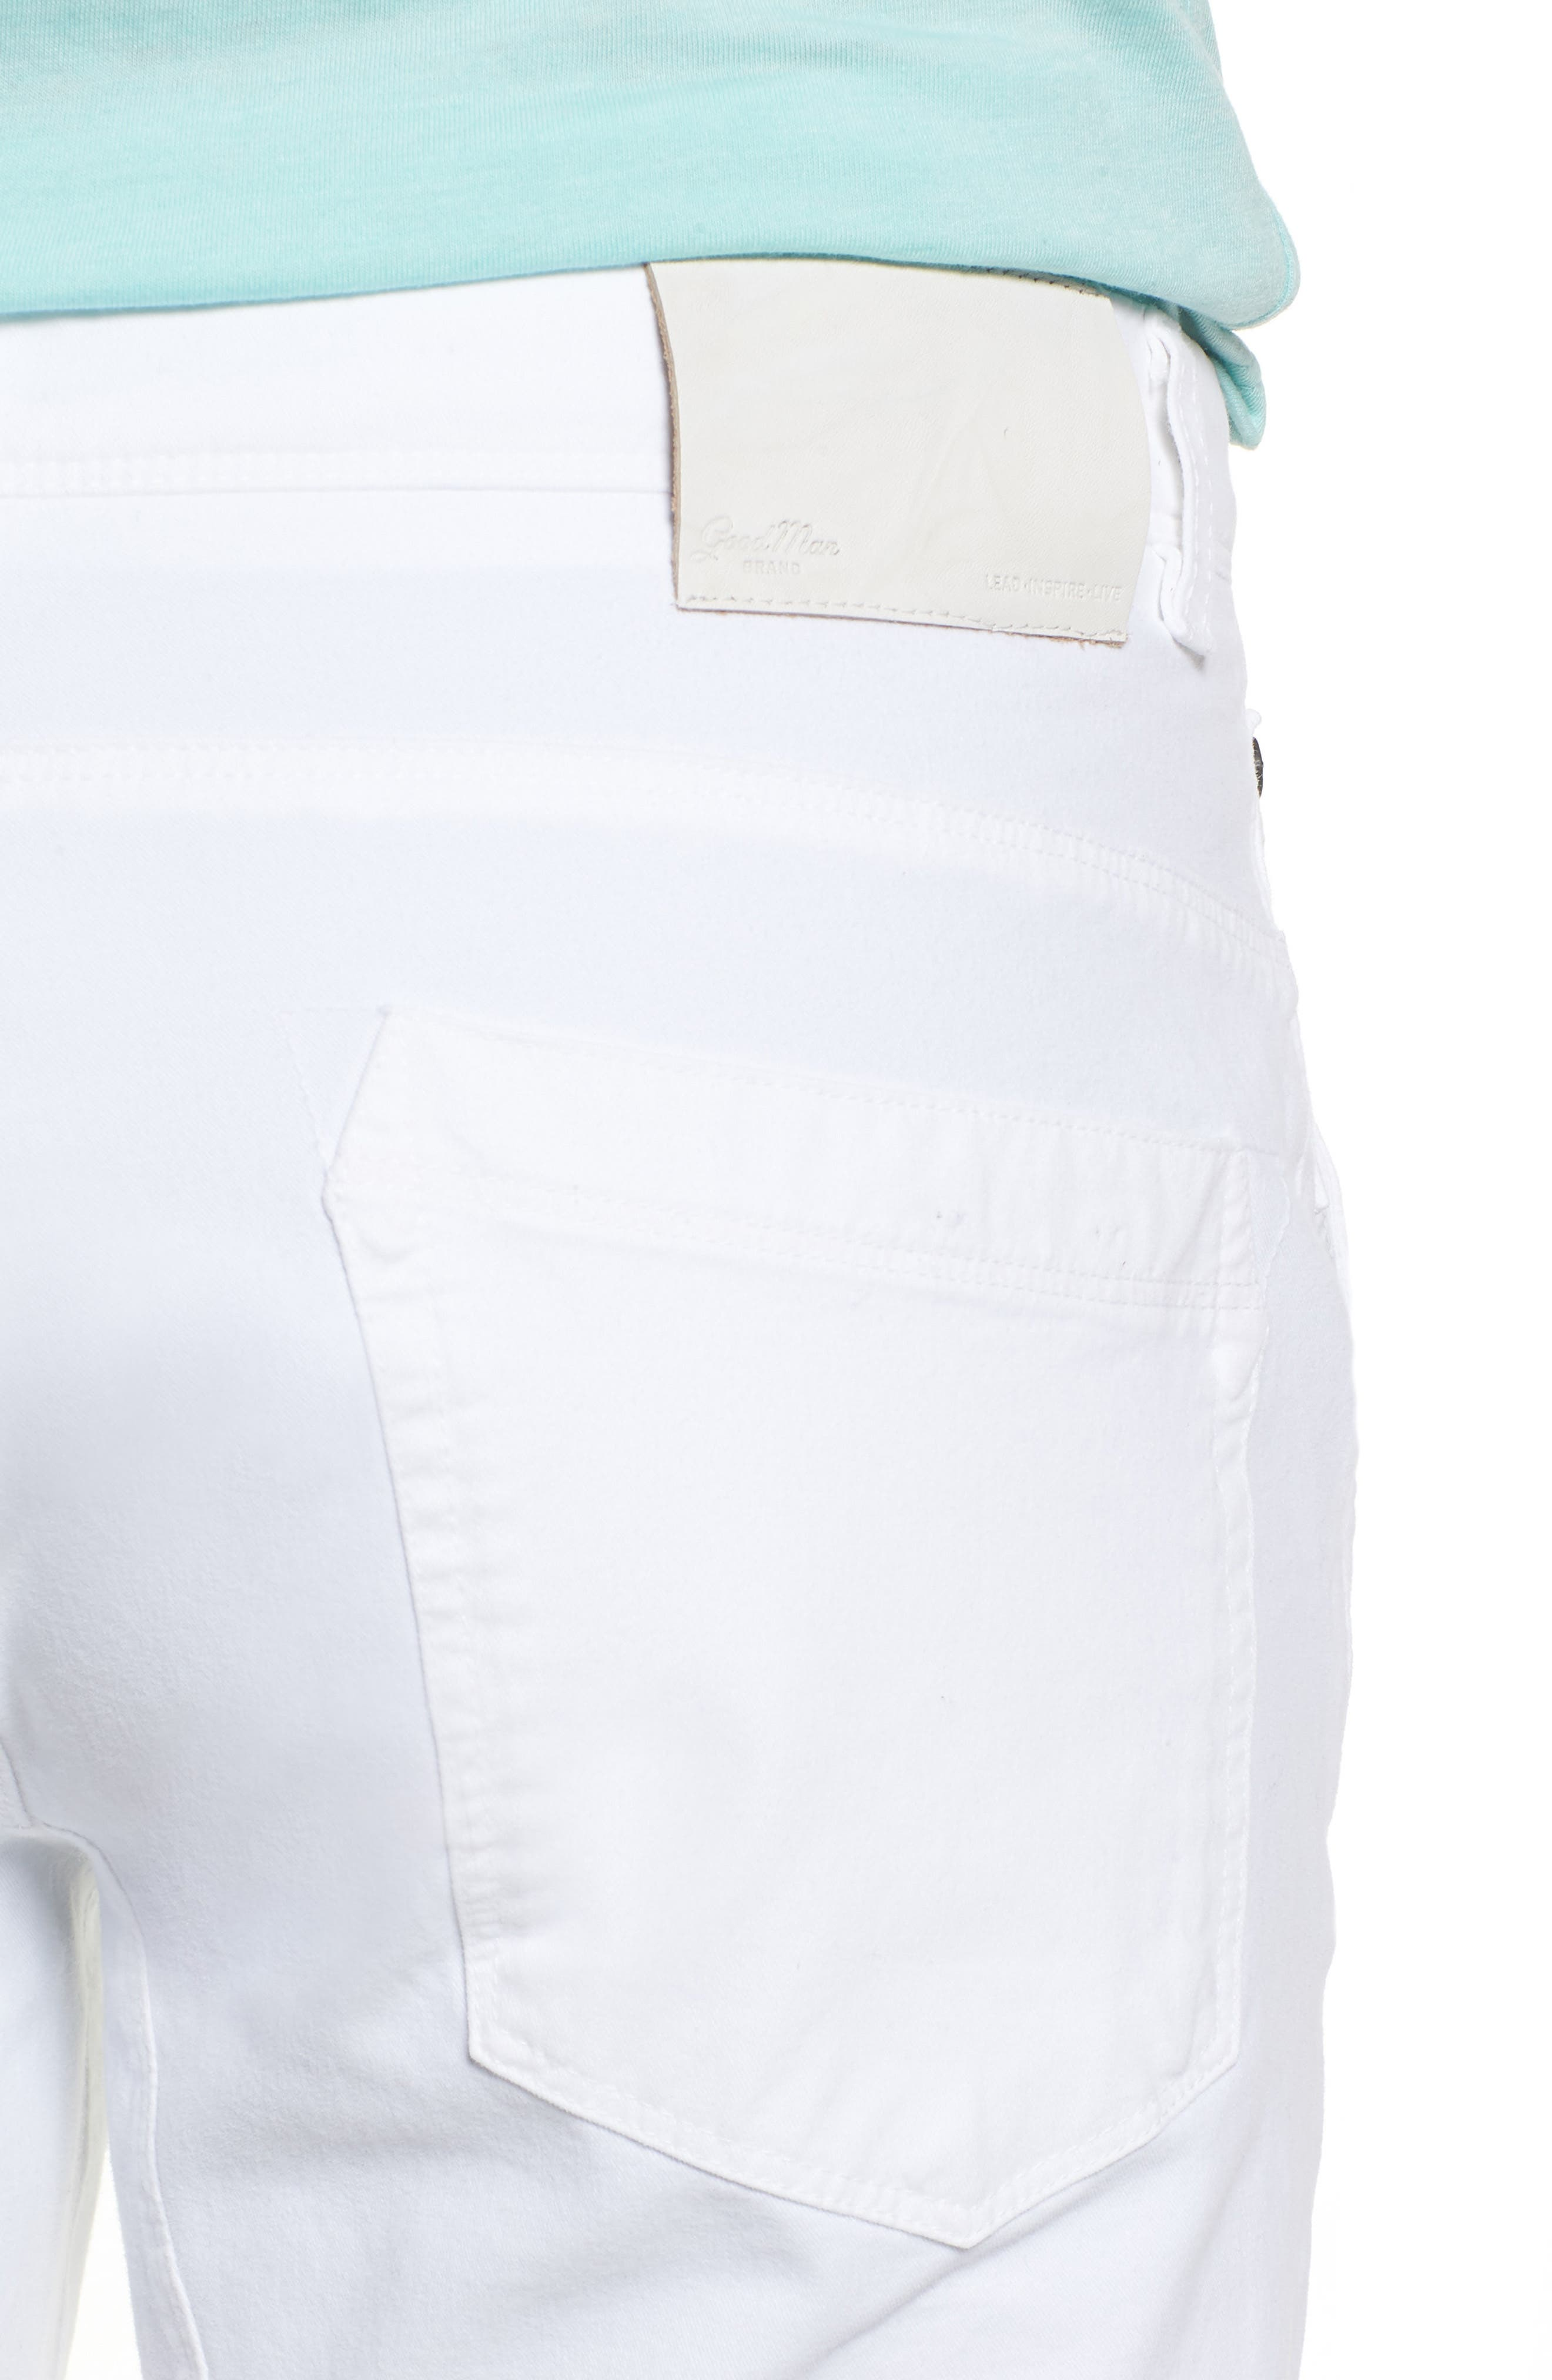 Hybrid Slim Fit Stretch Pants,                             Alternate thumbnail 4, color,                             White